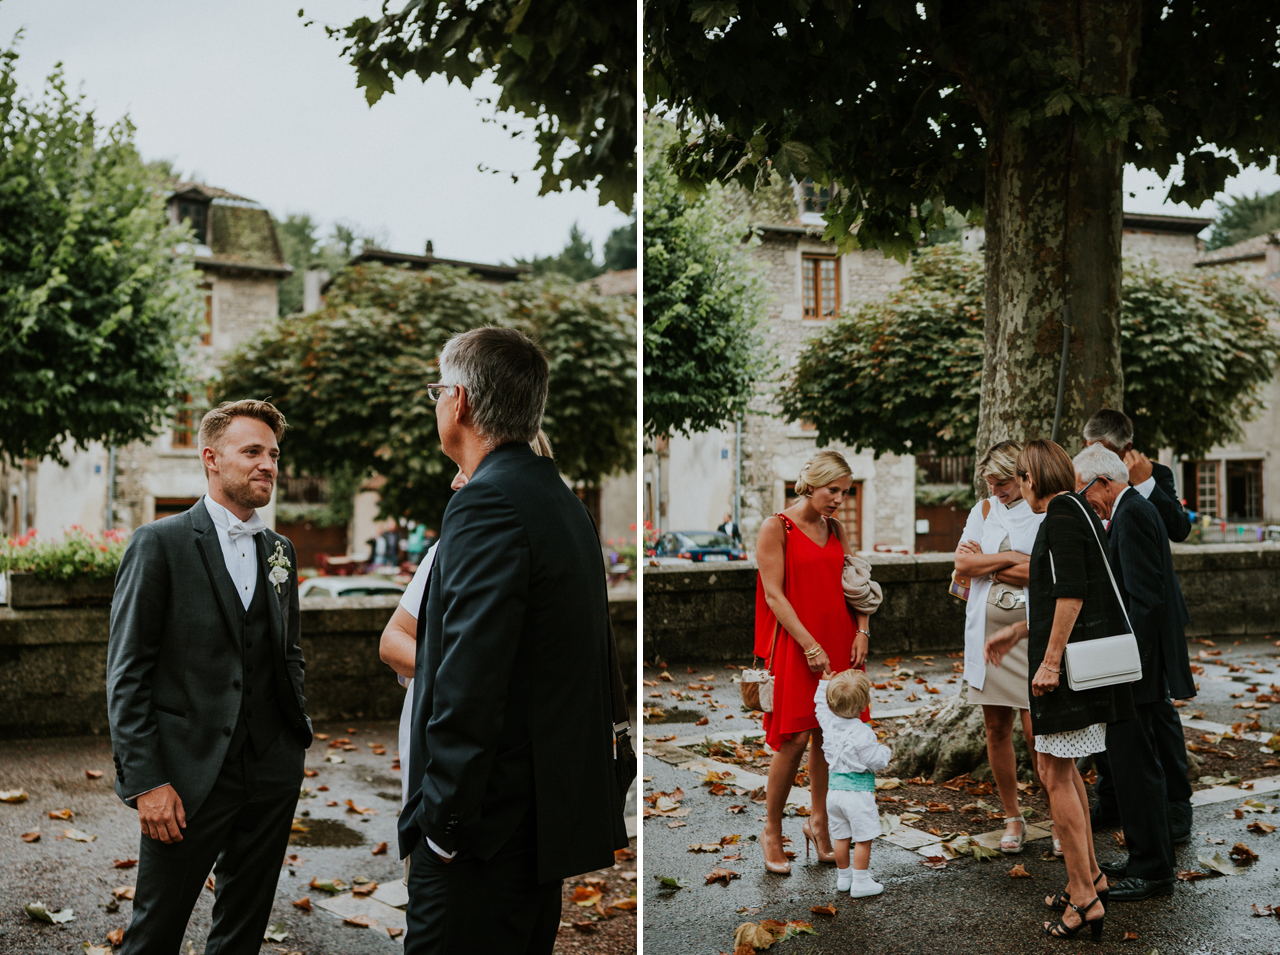 020-wedding-photographer-coralie-lescieux-photographe-mariage-nord-lille-paris